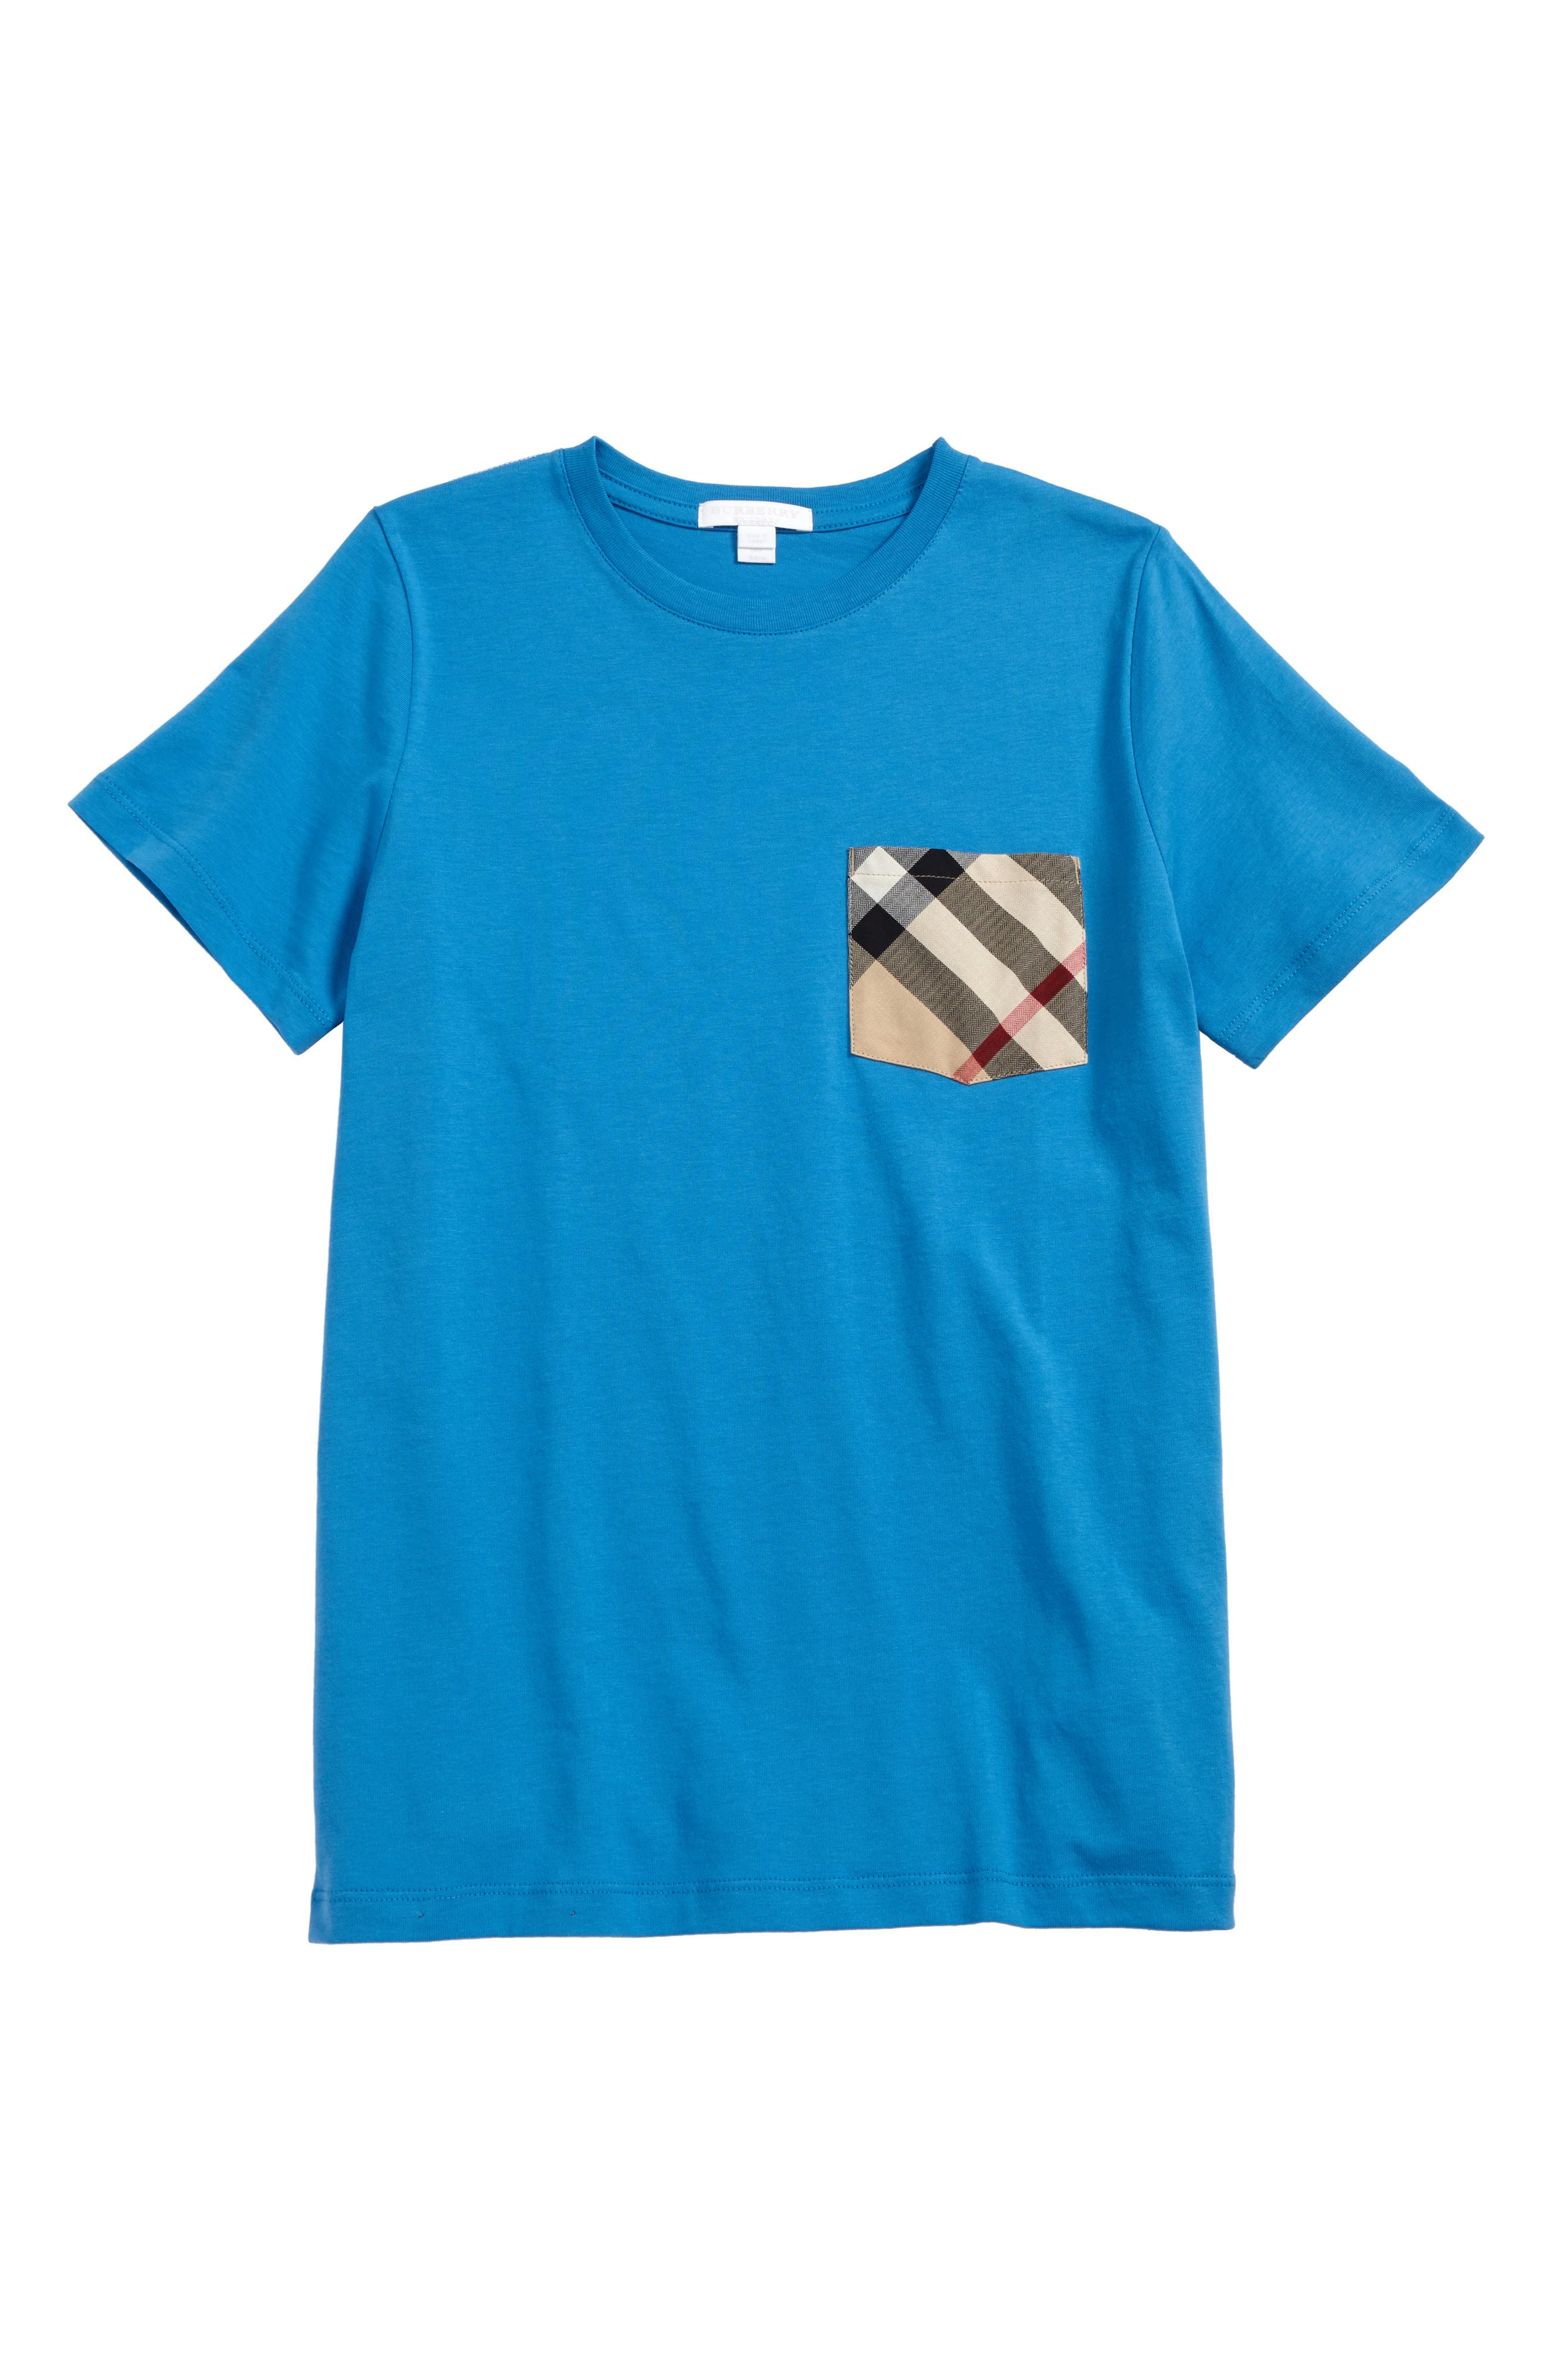 Alternate Image 1 Selected - Burberry Pocket T-Shirt (Little Boys & Big Boys)